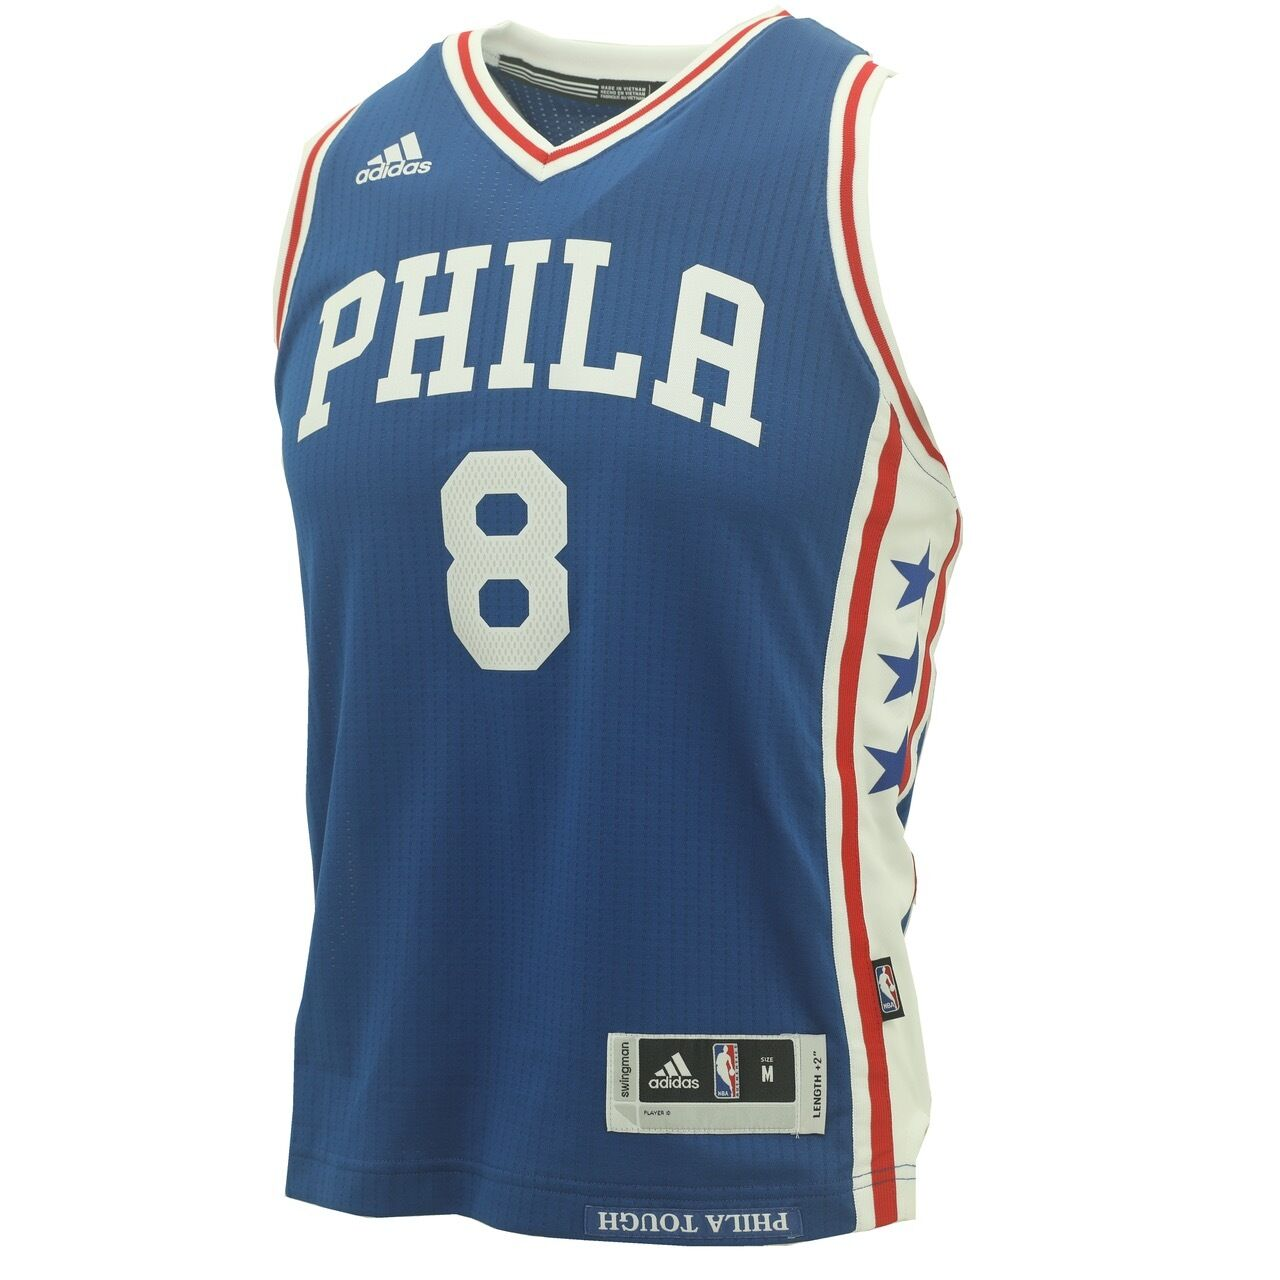 pretty nice 0779d 9db50 Details about Adidas Philadelphia 76ers Youth Size Okafor Swingman official  NBA +2